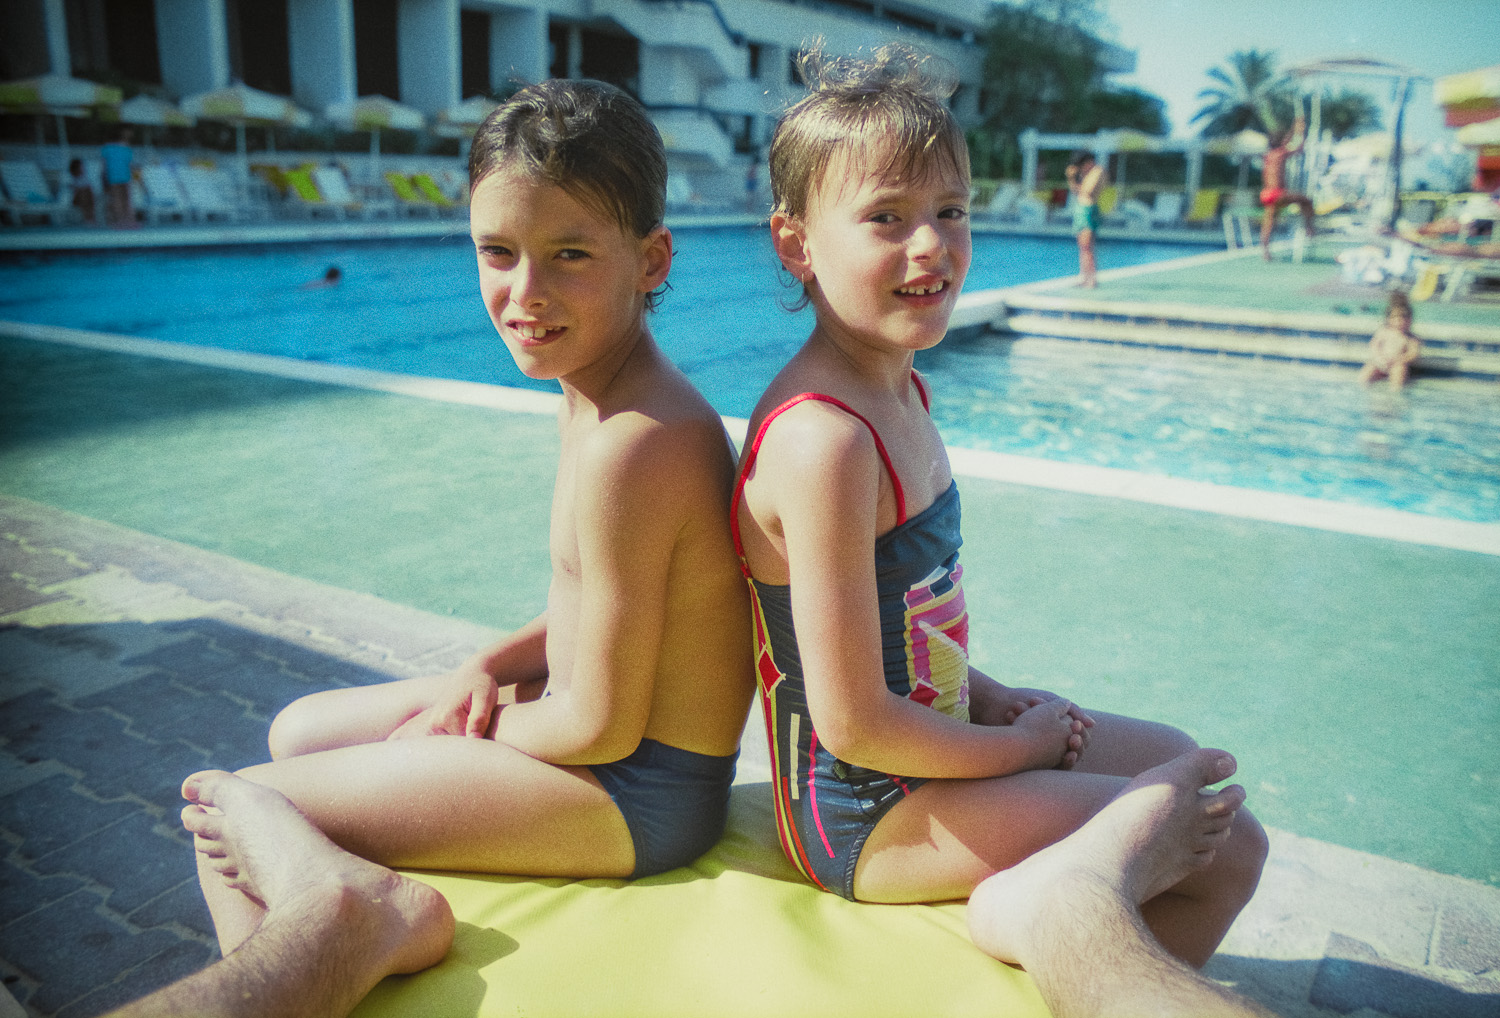 Yaniv and Liad - Dead Sea - 1988